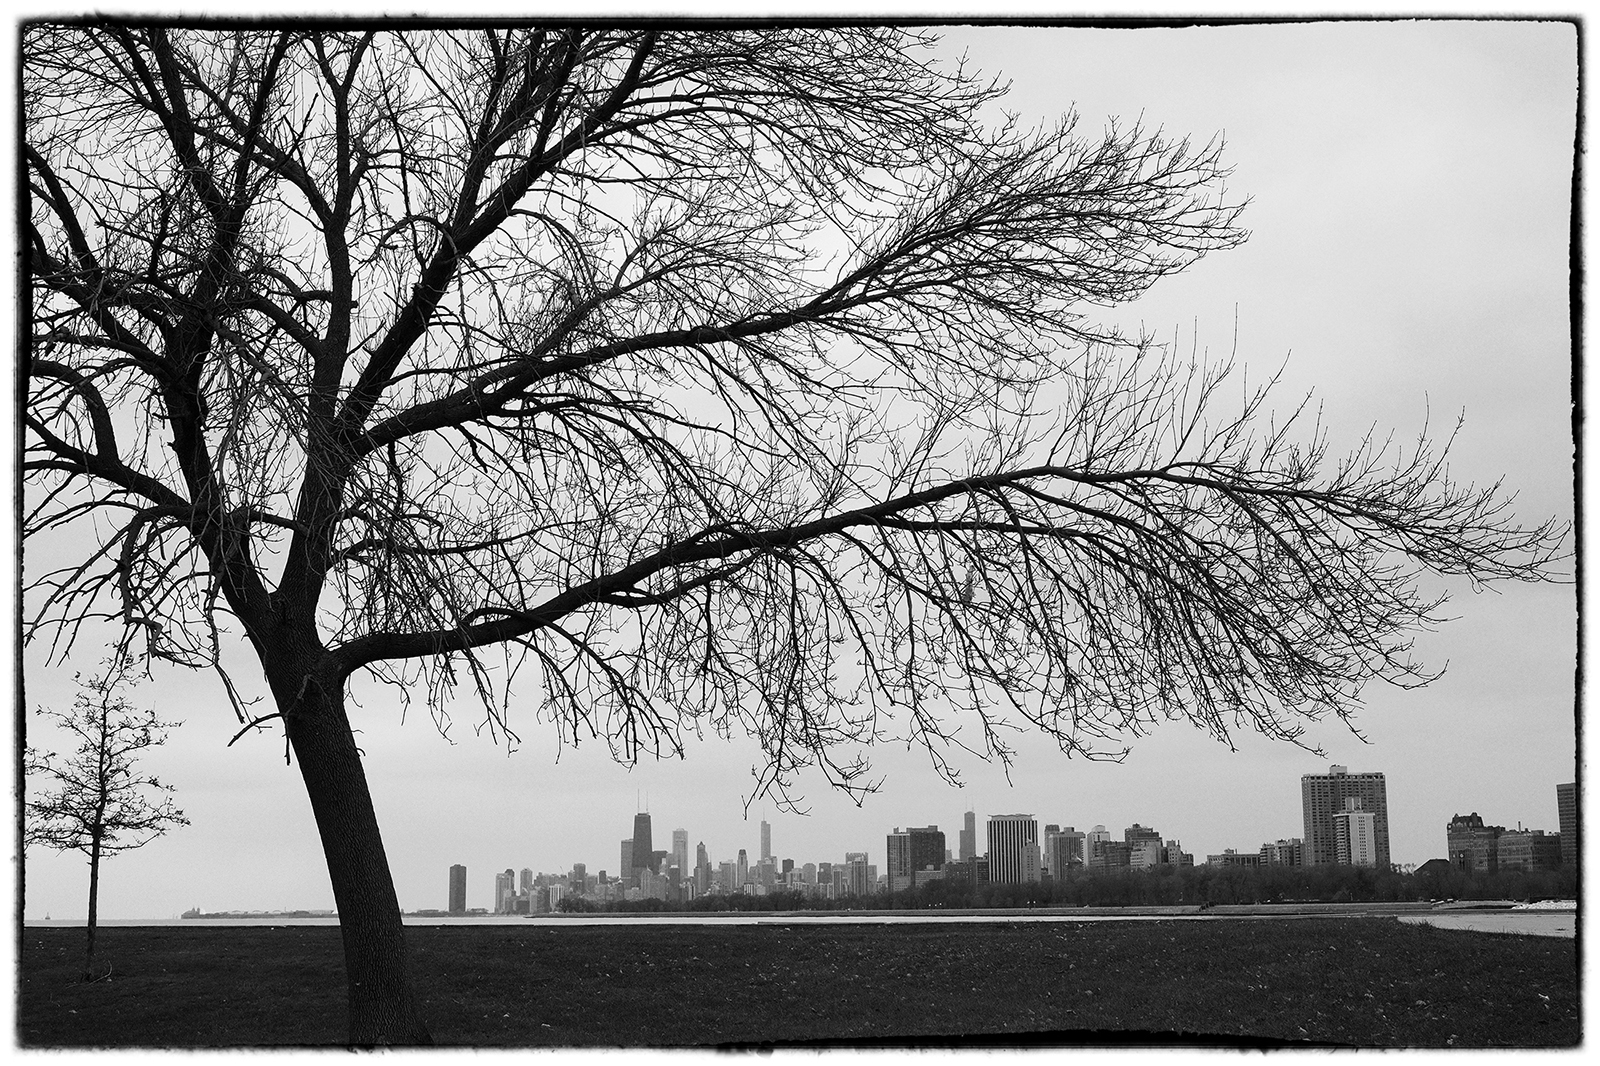 View of the Chicago Skyline in the winter